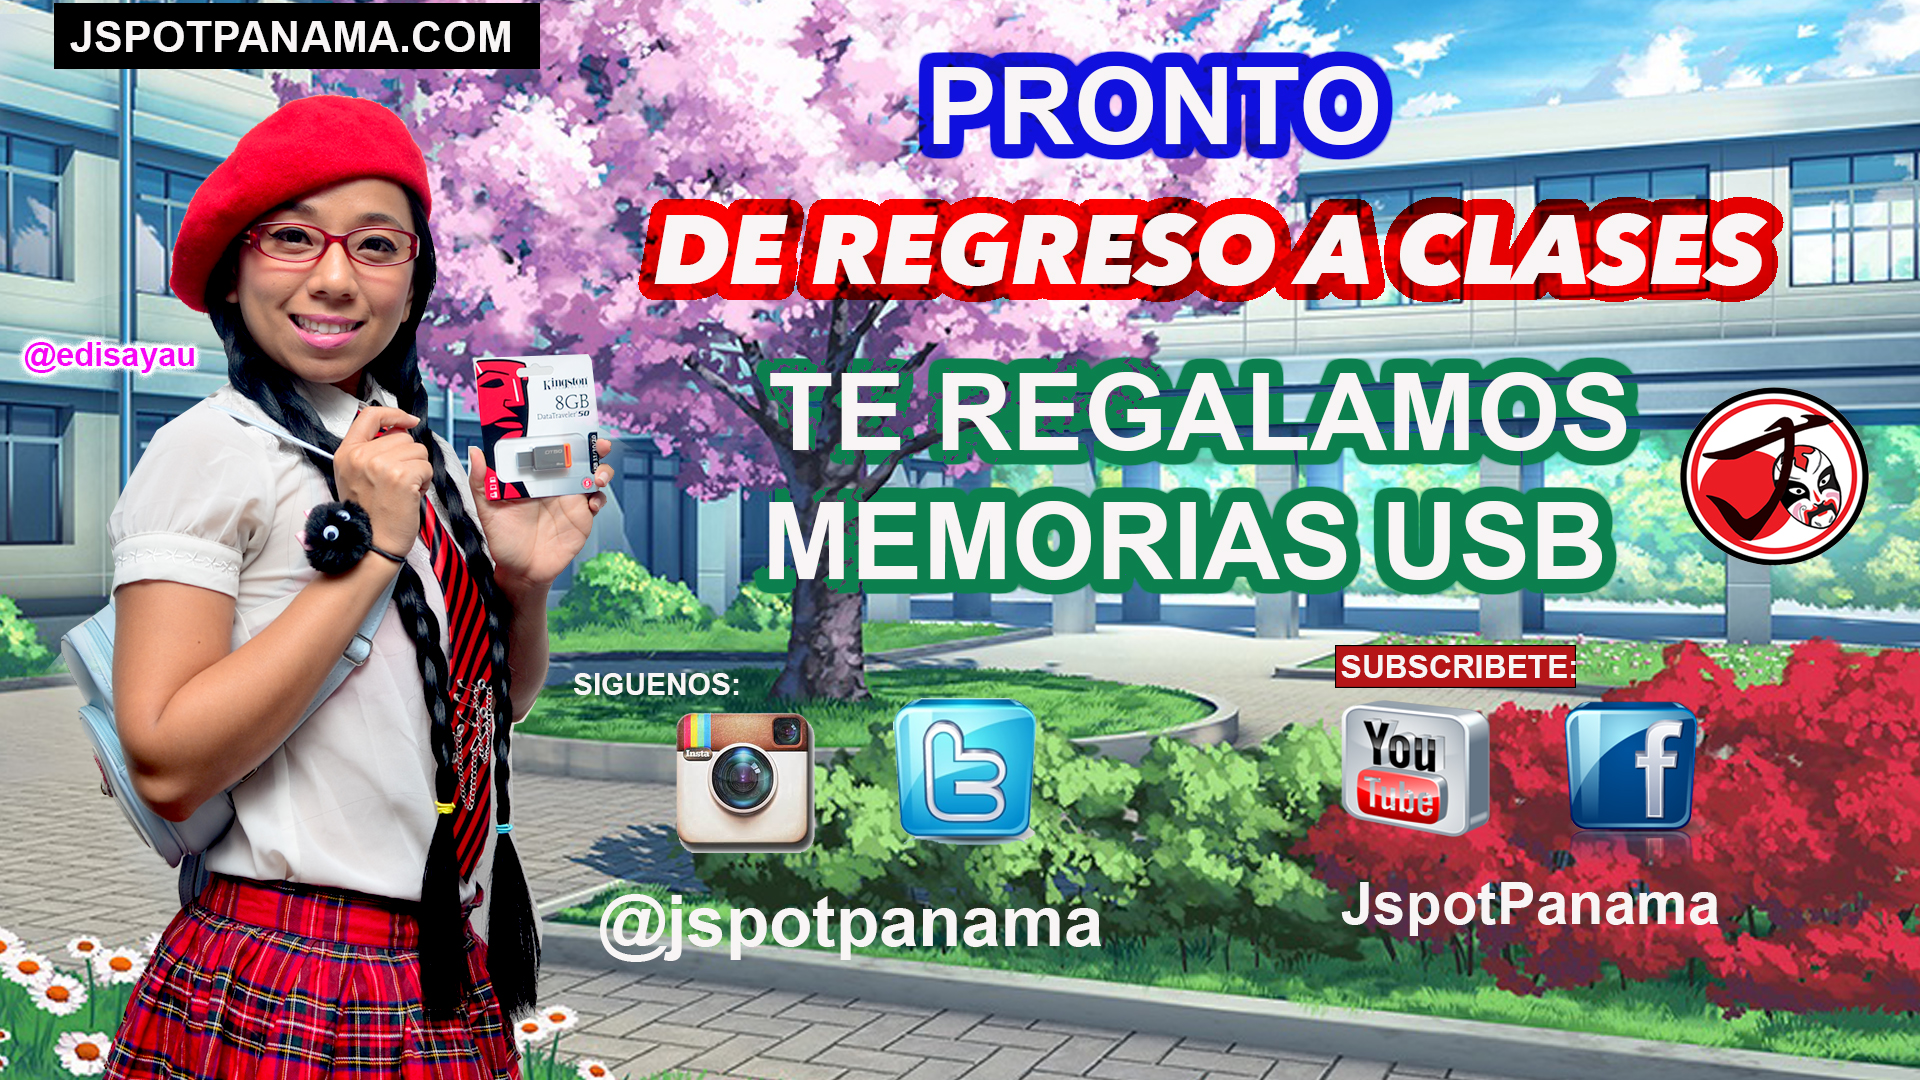 pronto-ganate-memorias-usb-de-kingston-